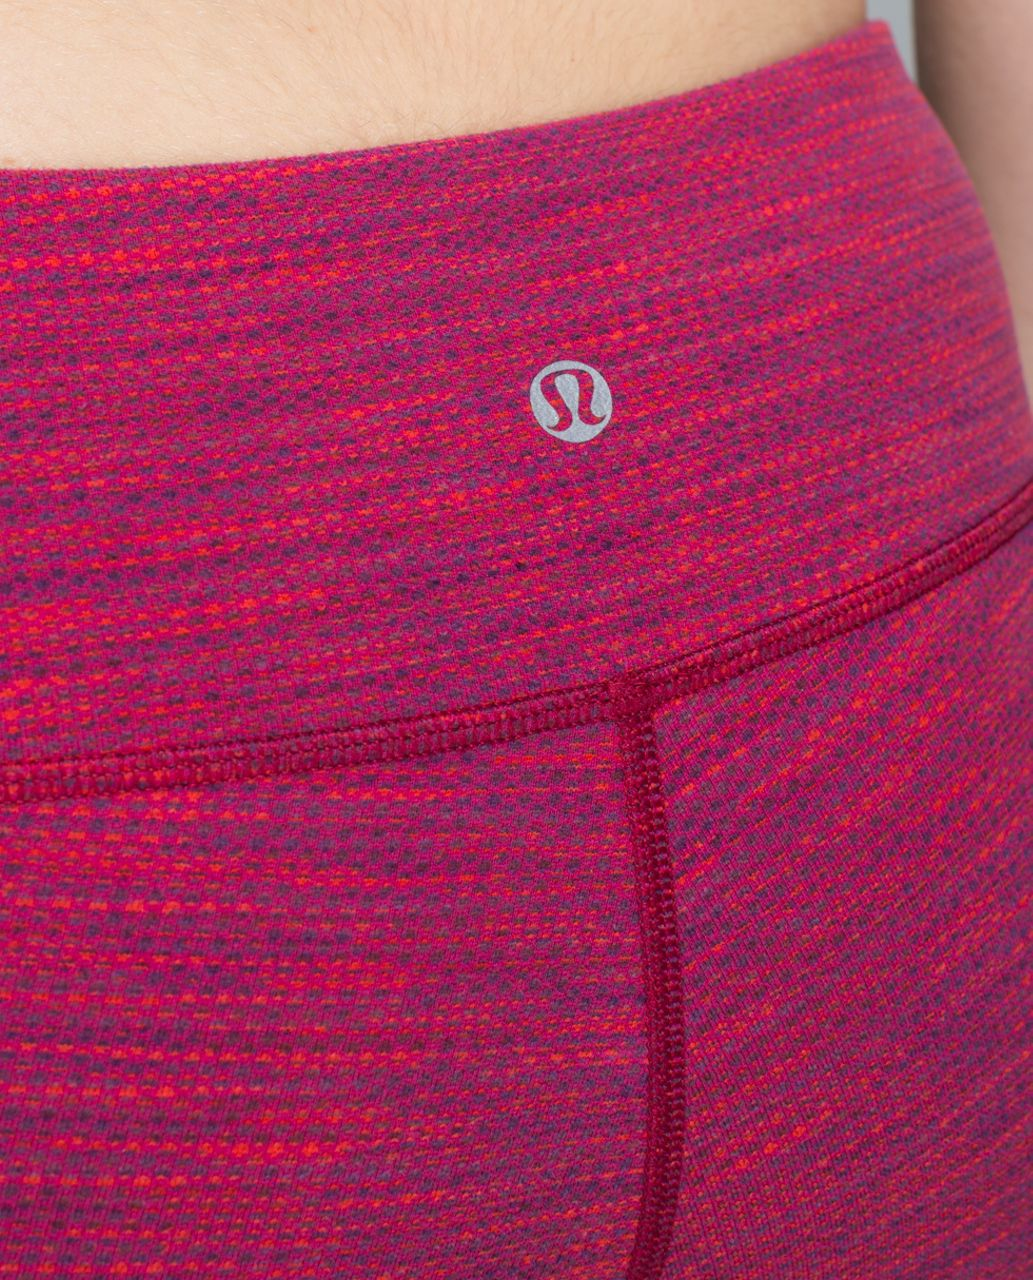 Lululemon Wunder Under Crop II - Diamond Jacquard Space Dye Bumble Berry Flaming Tomato